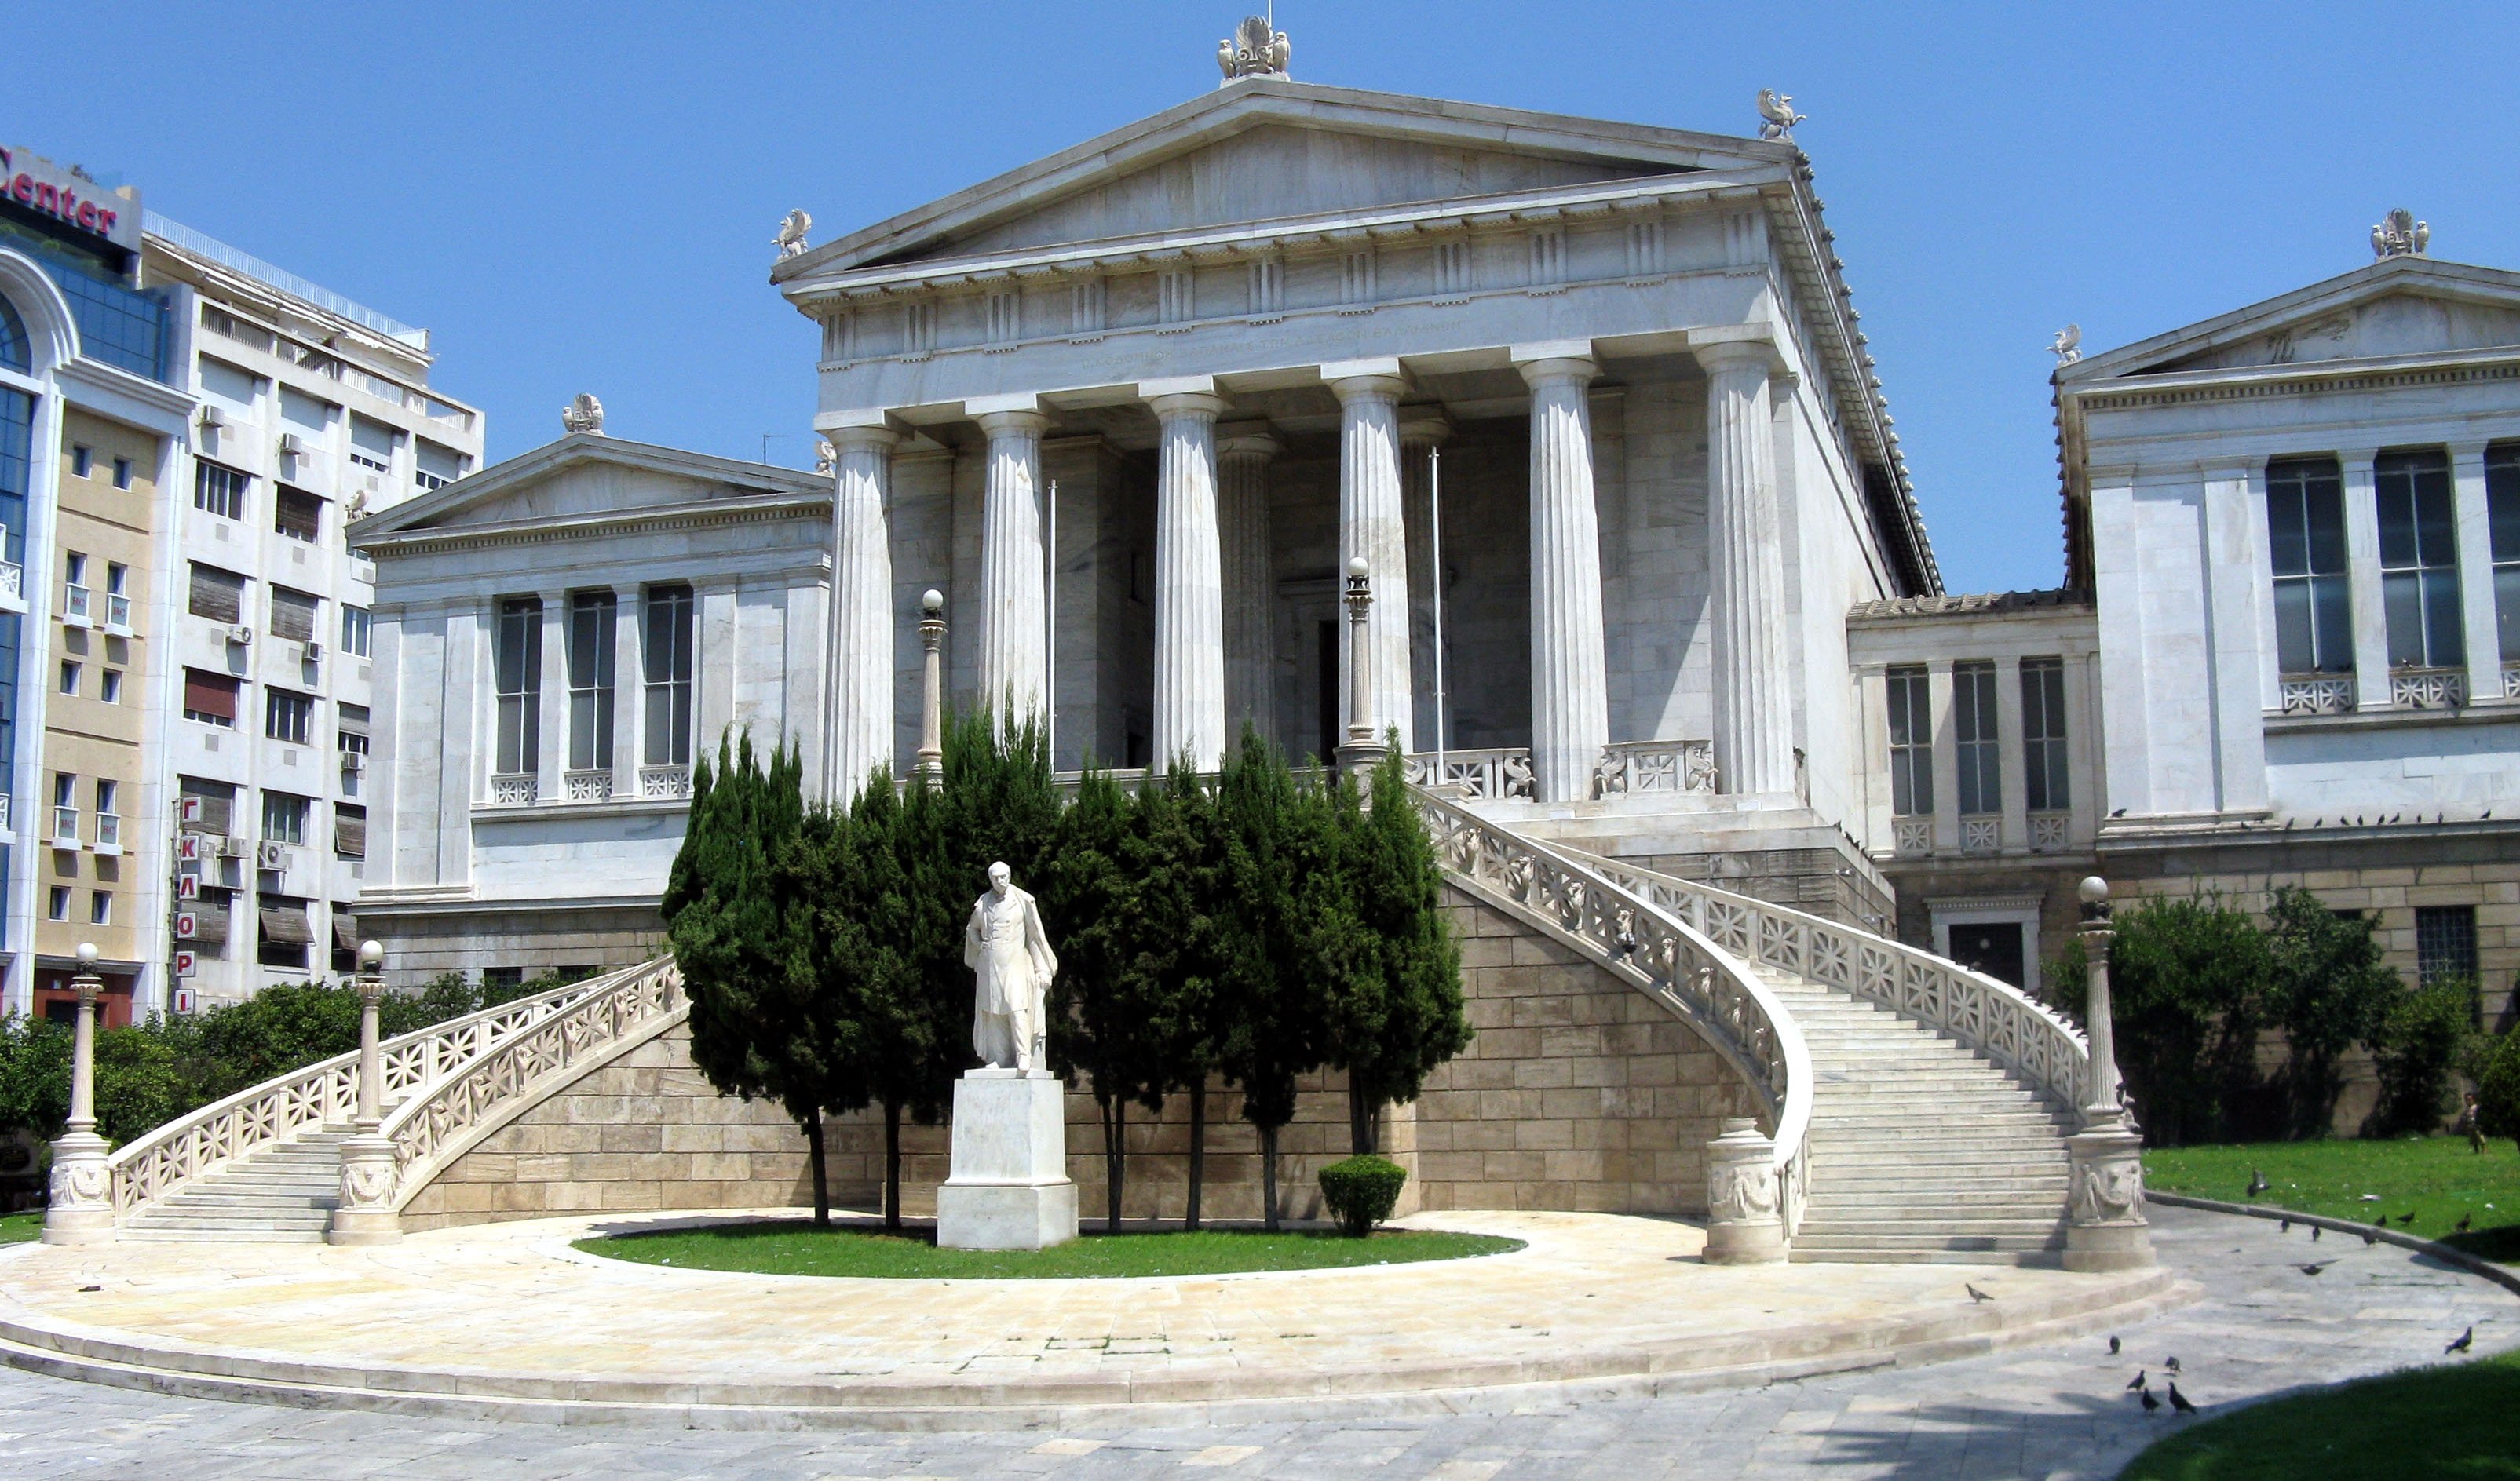 https://i1.wp.com/upload.wikimedia.org/wikipedia/commons/3/32/National_Library_of_Greece_in_Athens.jpg